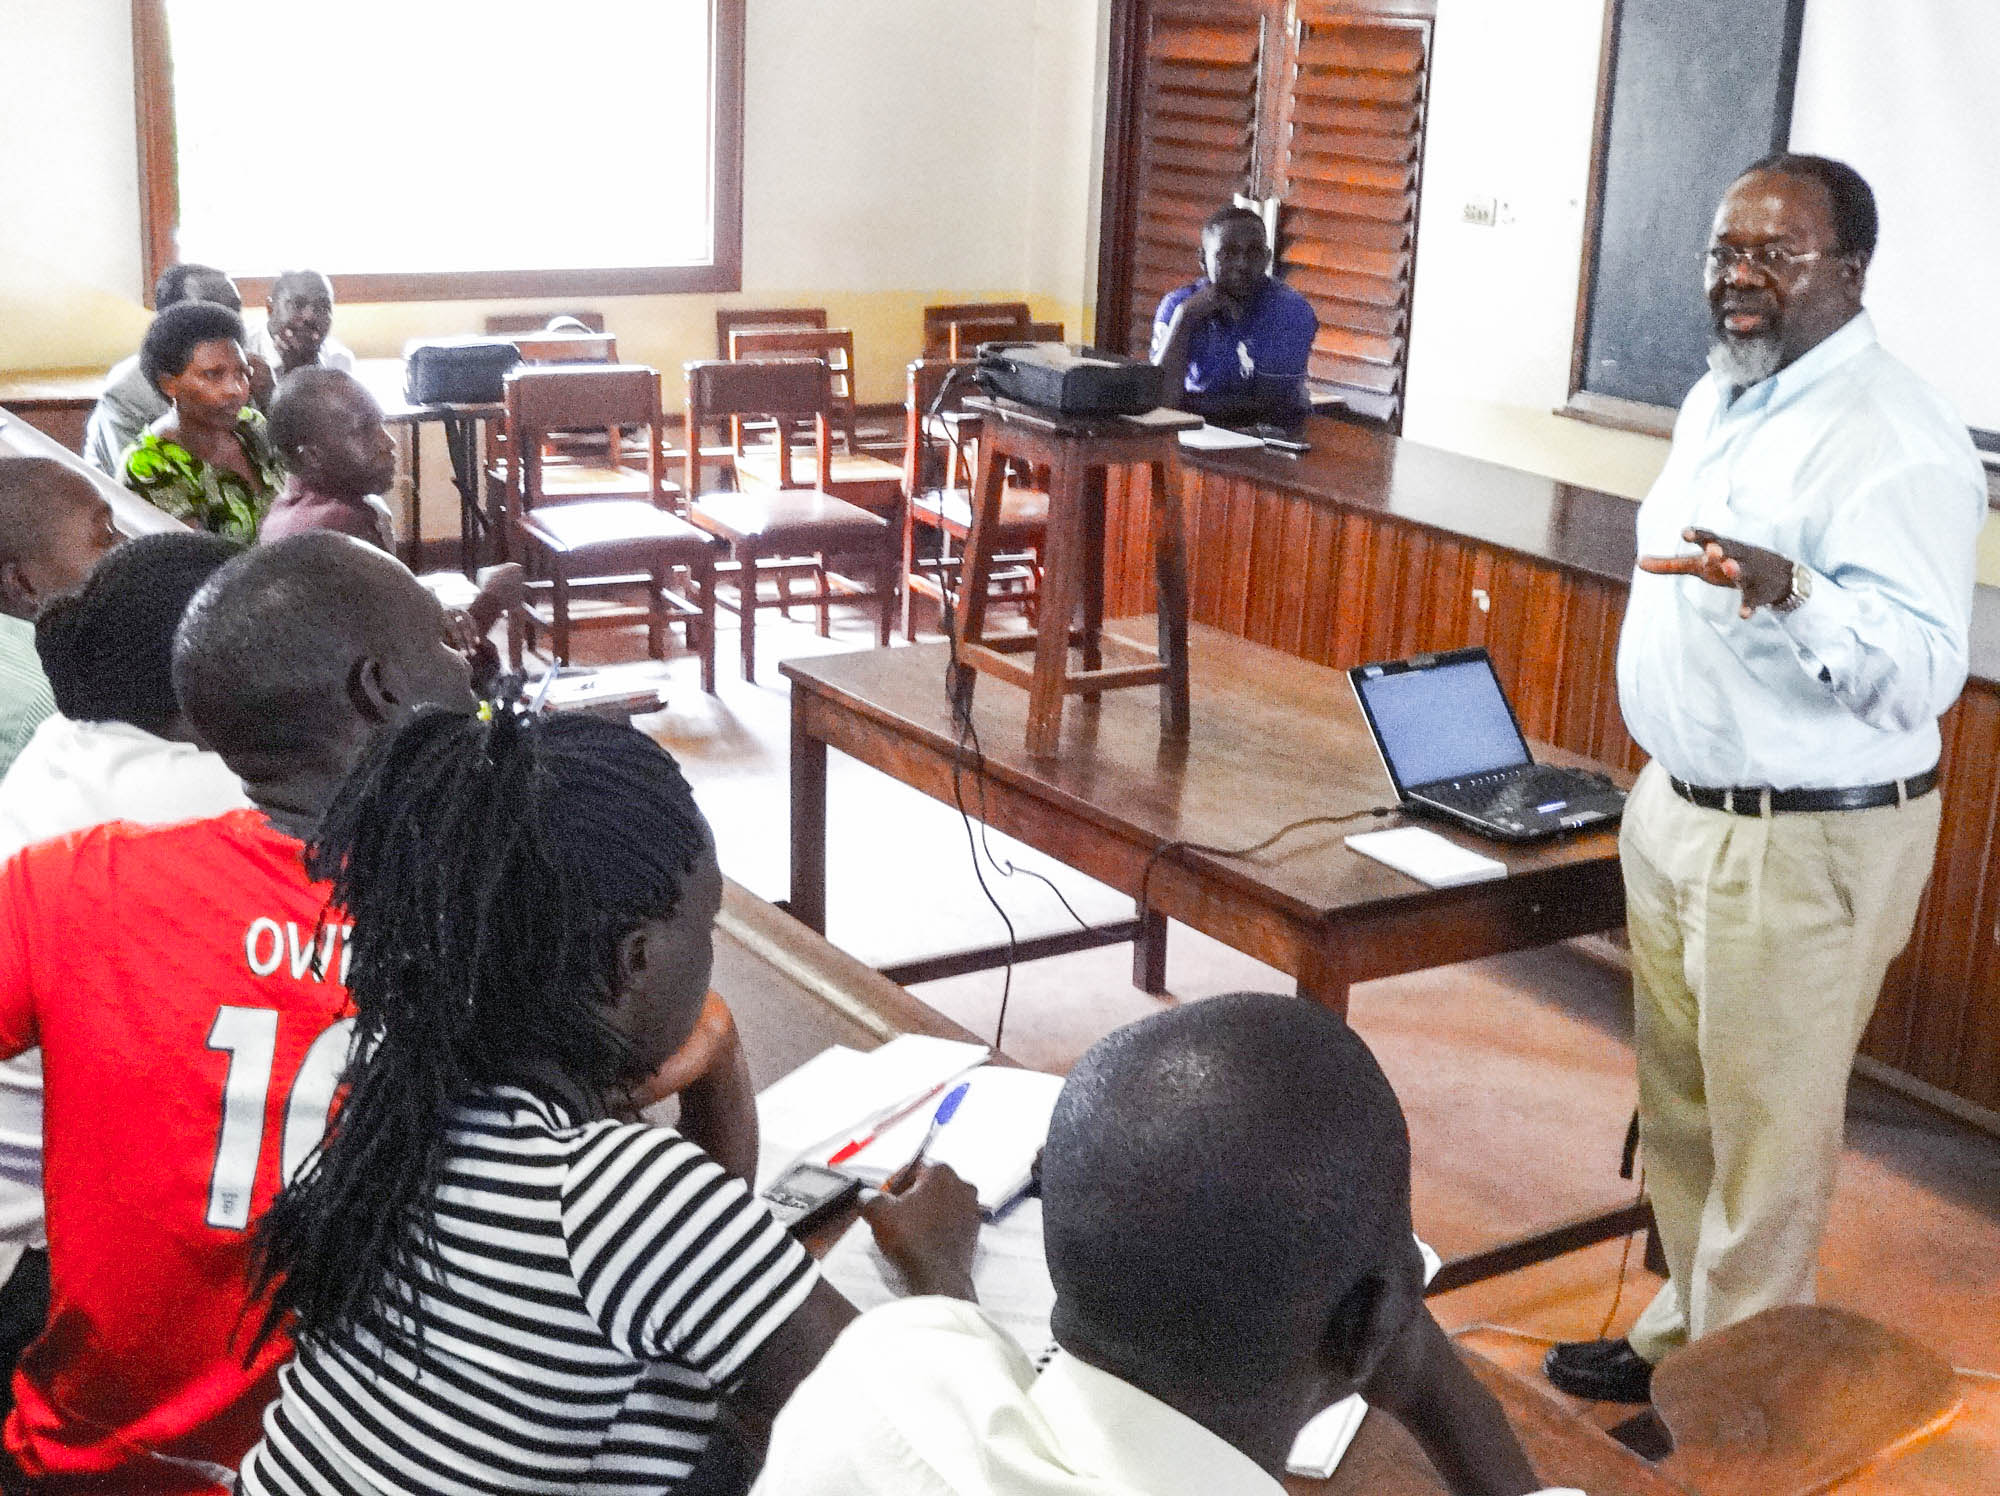 Mutimba teaching agricultural extension agents at Makerere University in Uganda. Mutimba oversees SAFE program activities at 11 universities in East Africa.